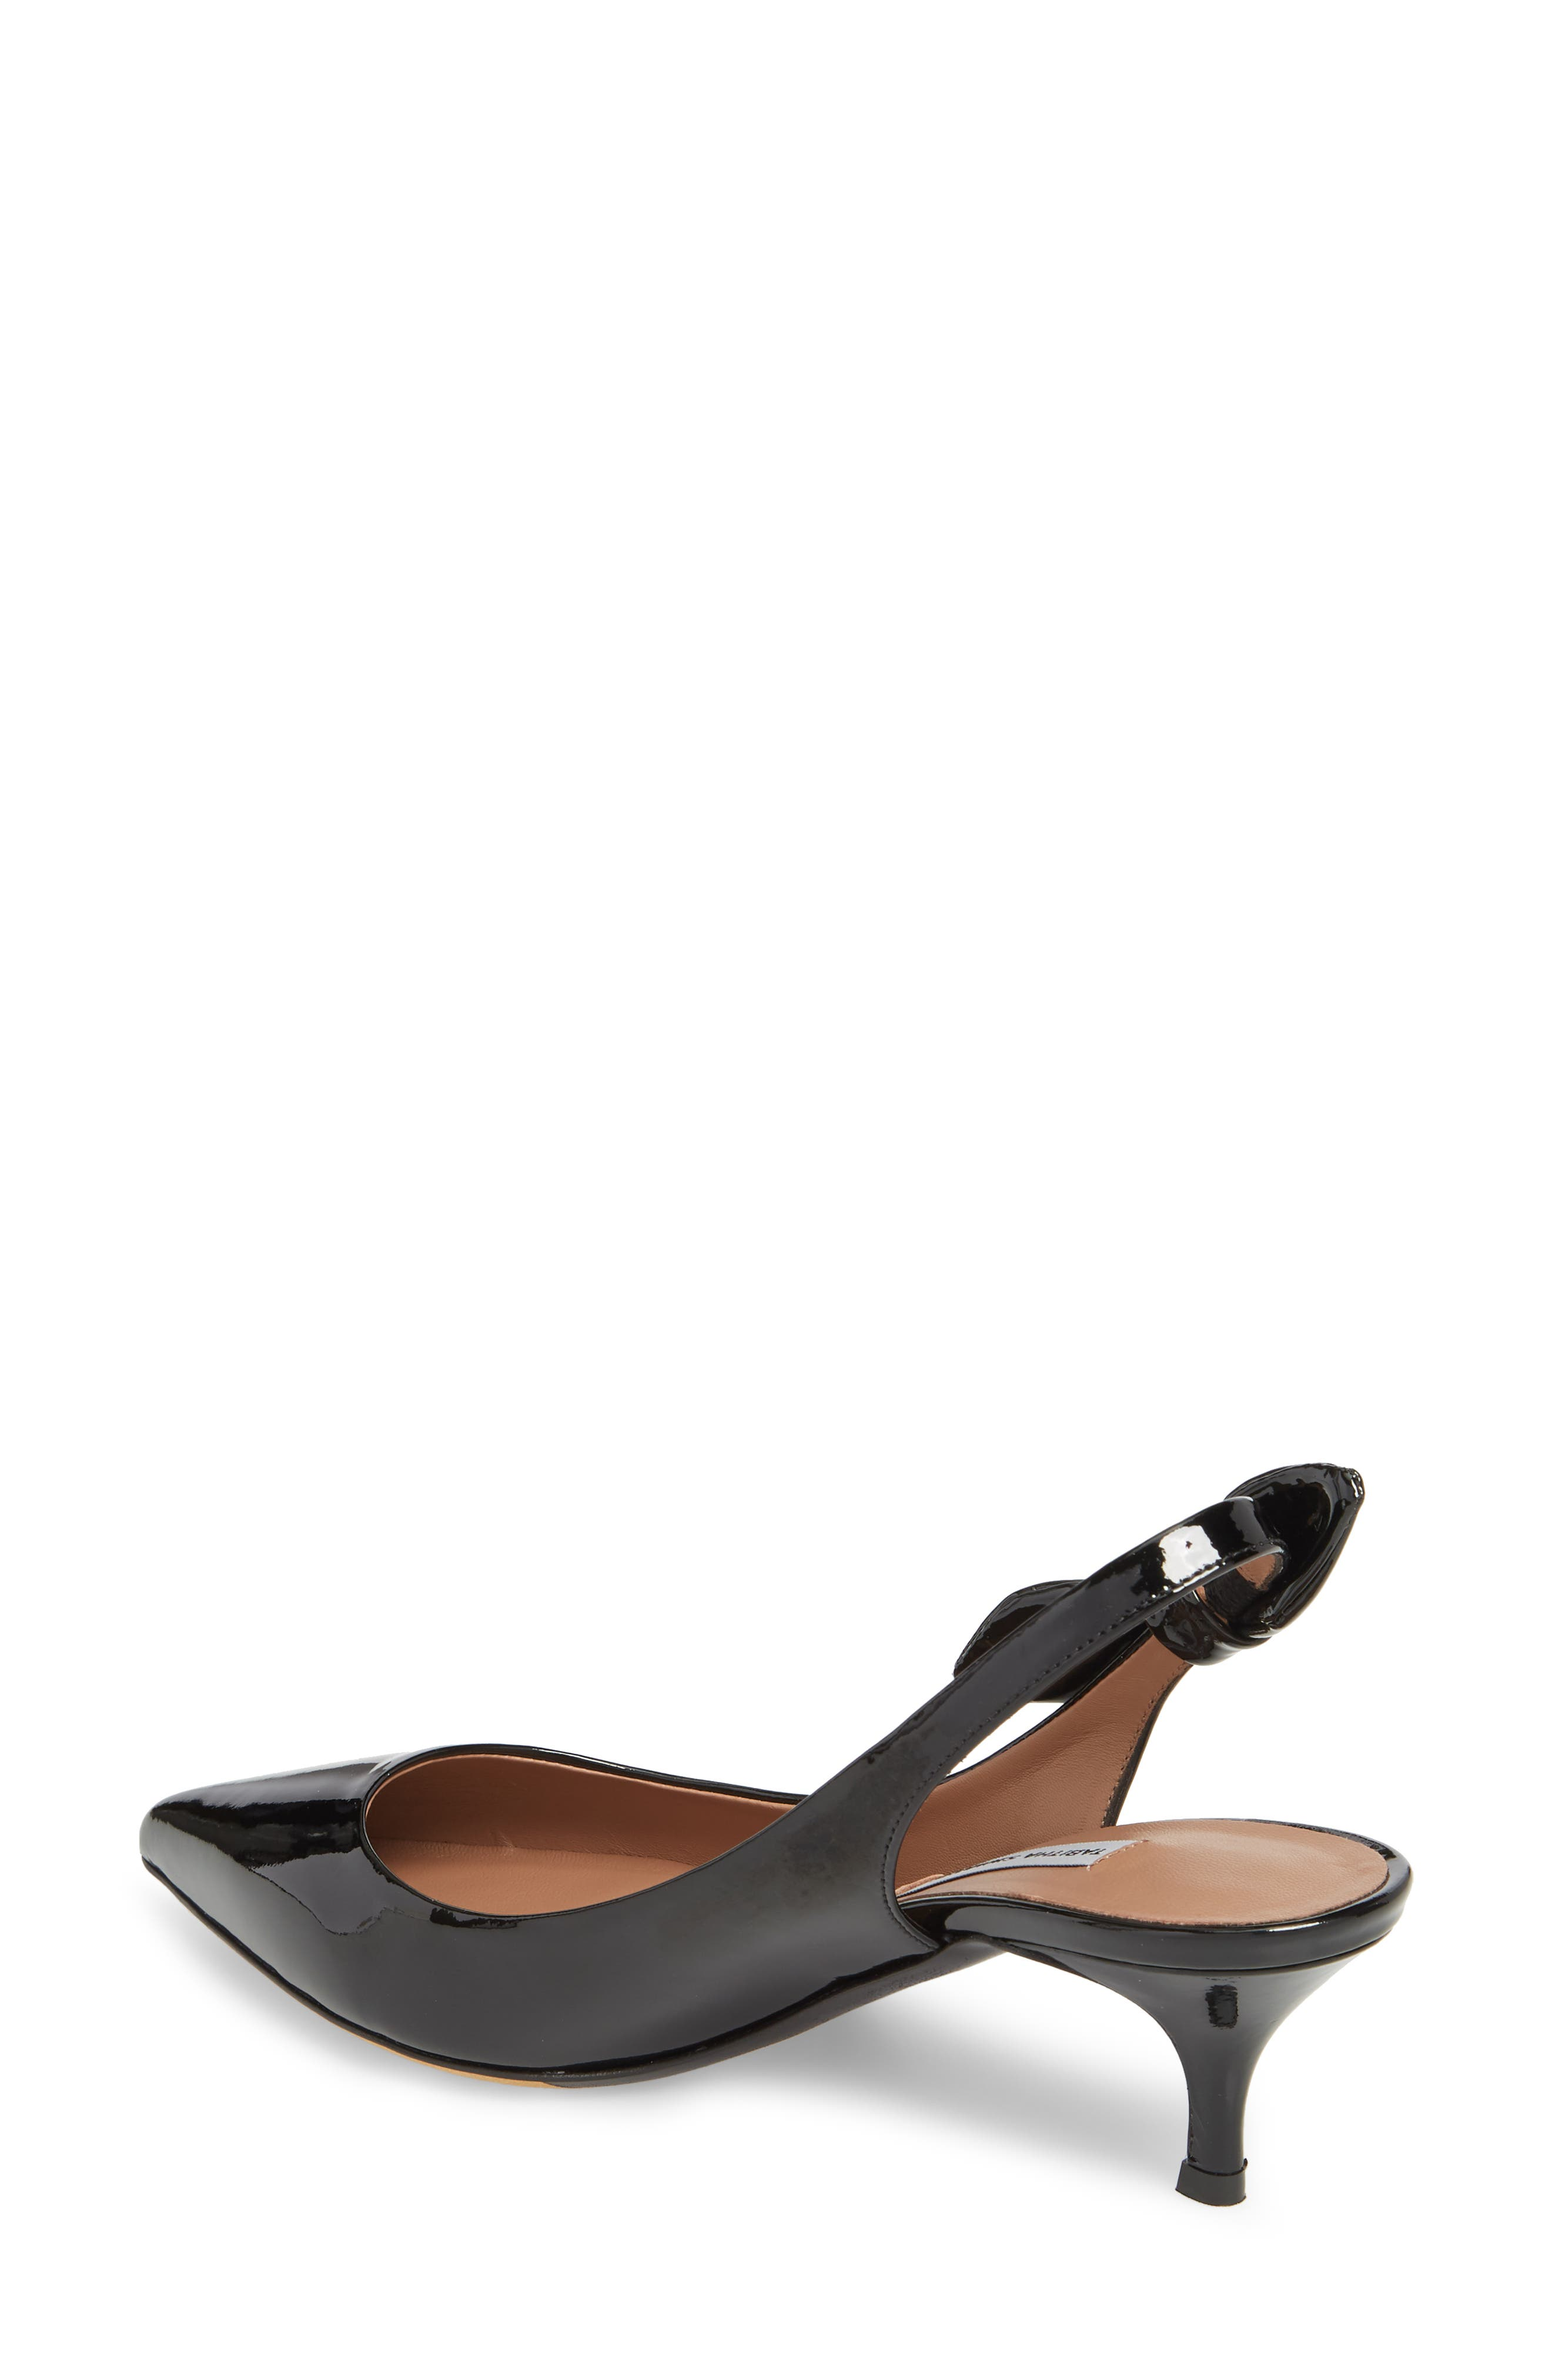 Rise Bow Slingback Pump,                             Alternate thumbnail 2, color,                             BLACK PATENT